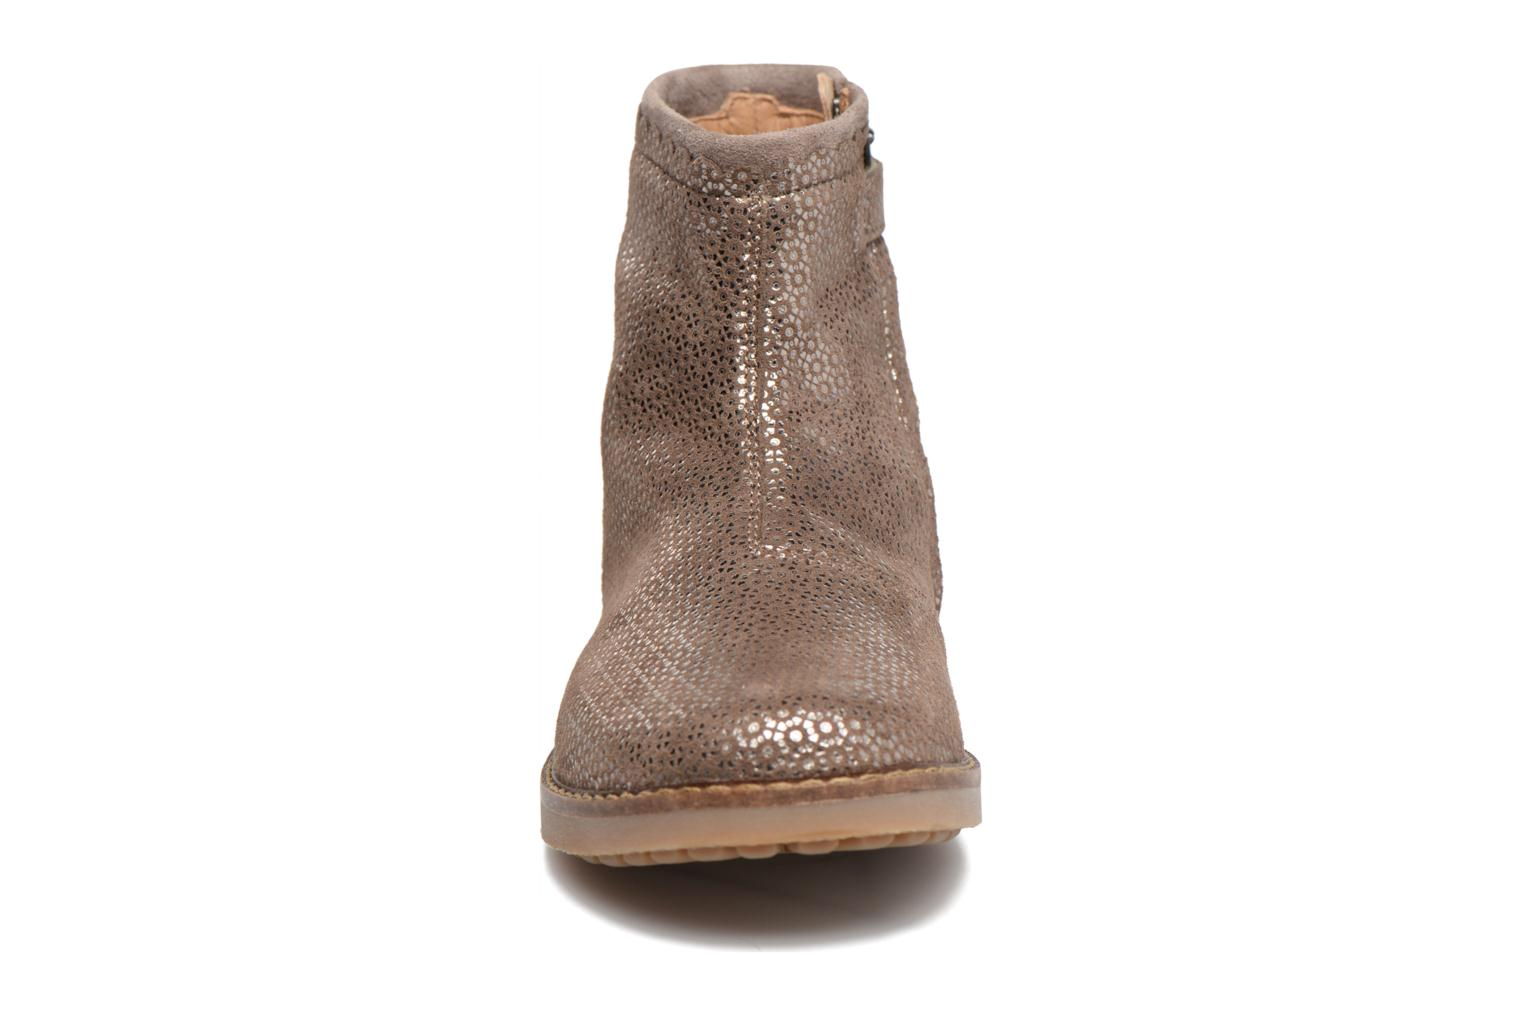 Trip Boots Croquet Camurca Taupe